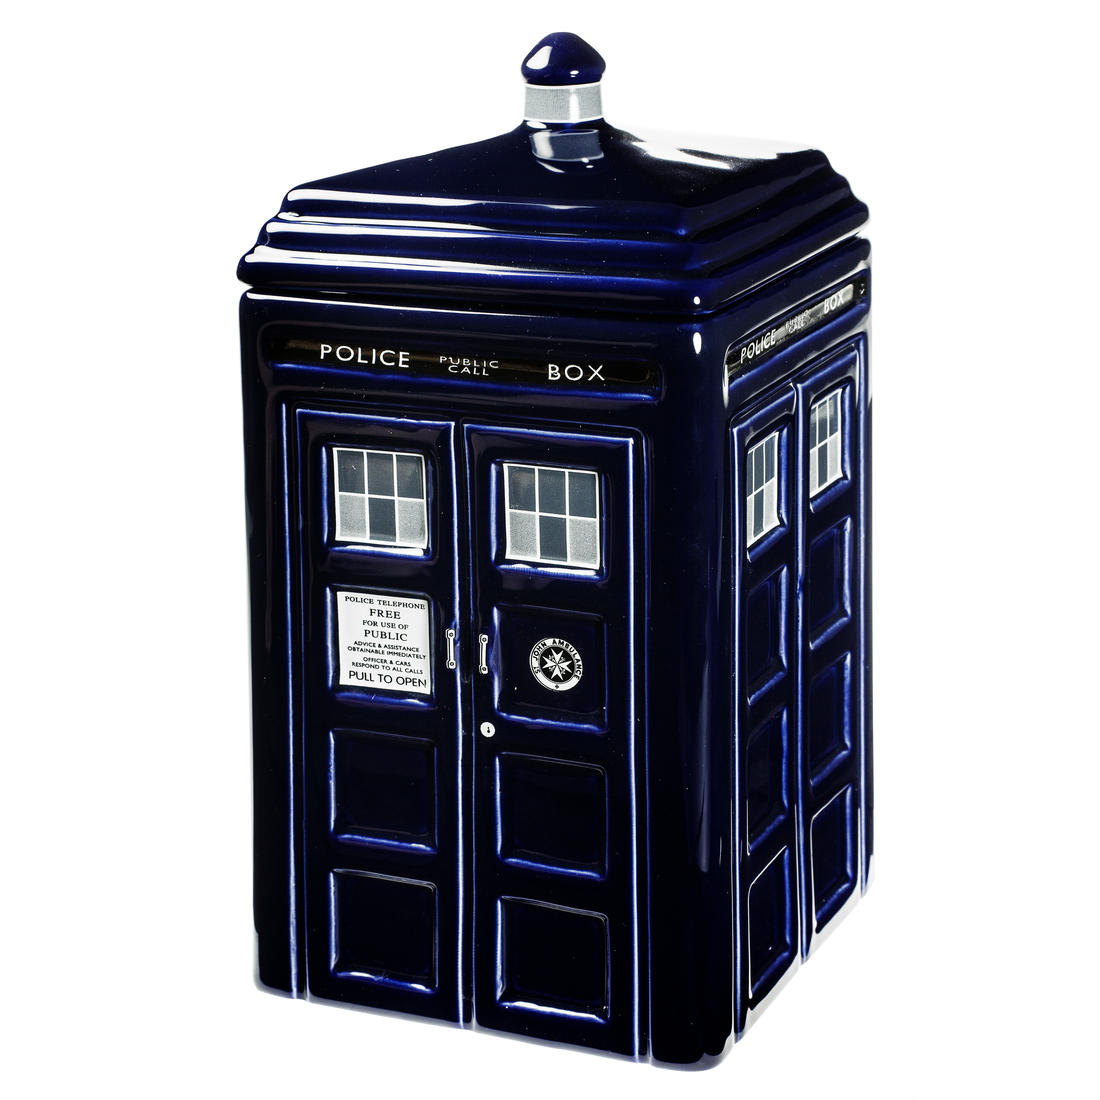 Doctor who tardis cookie jar getdigital - Tardis cookie jar ...